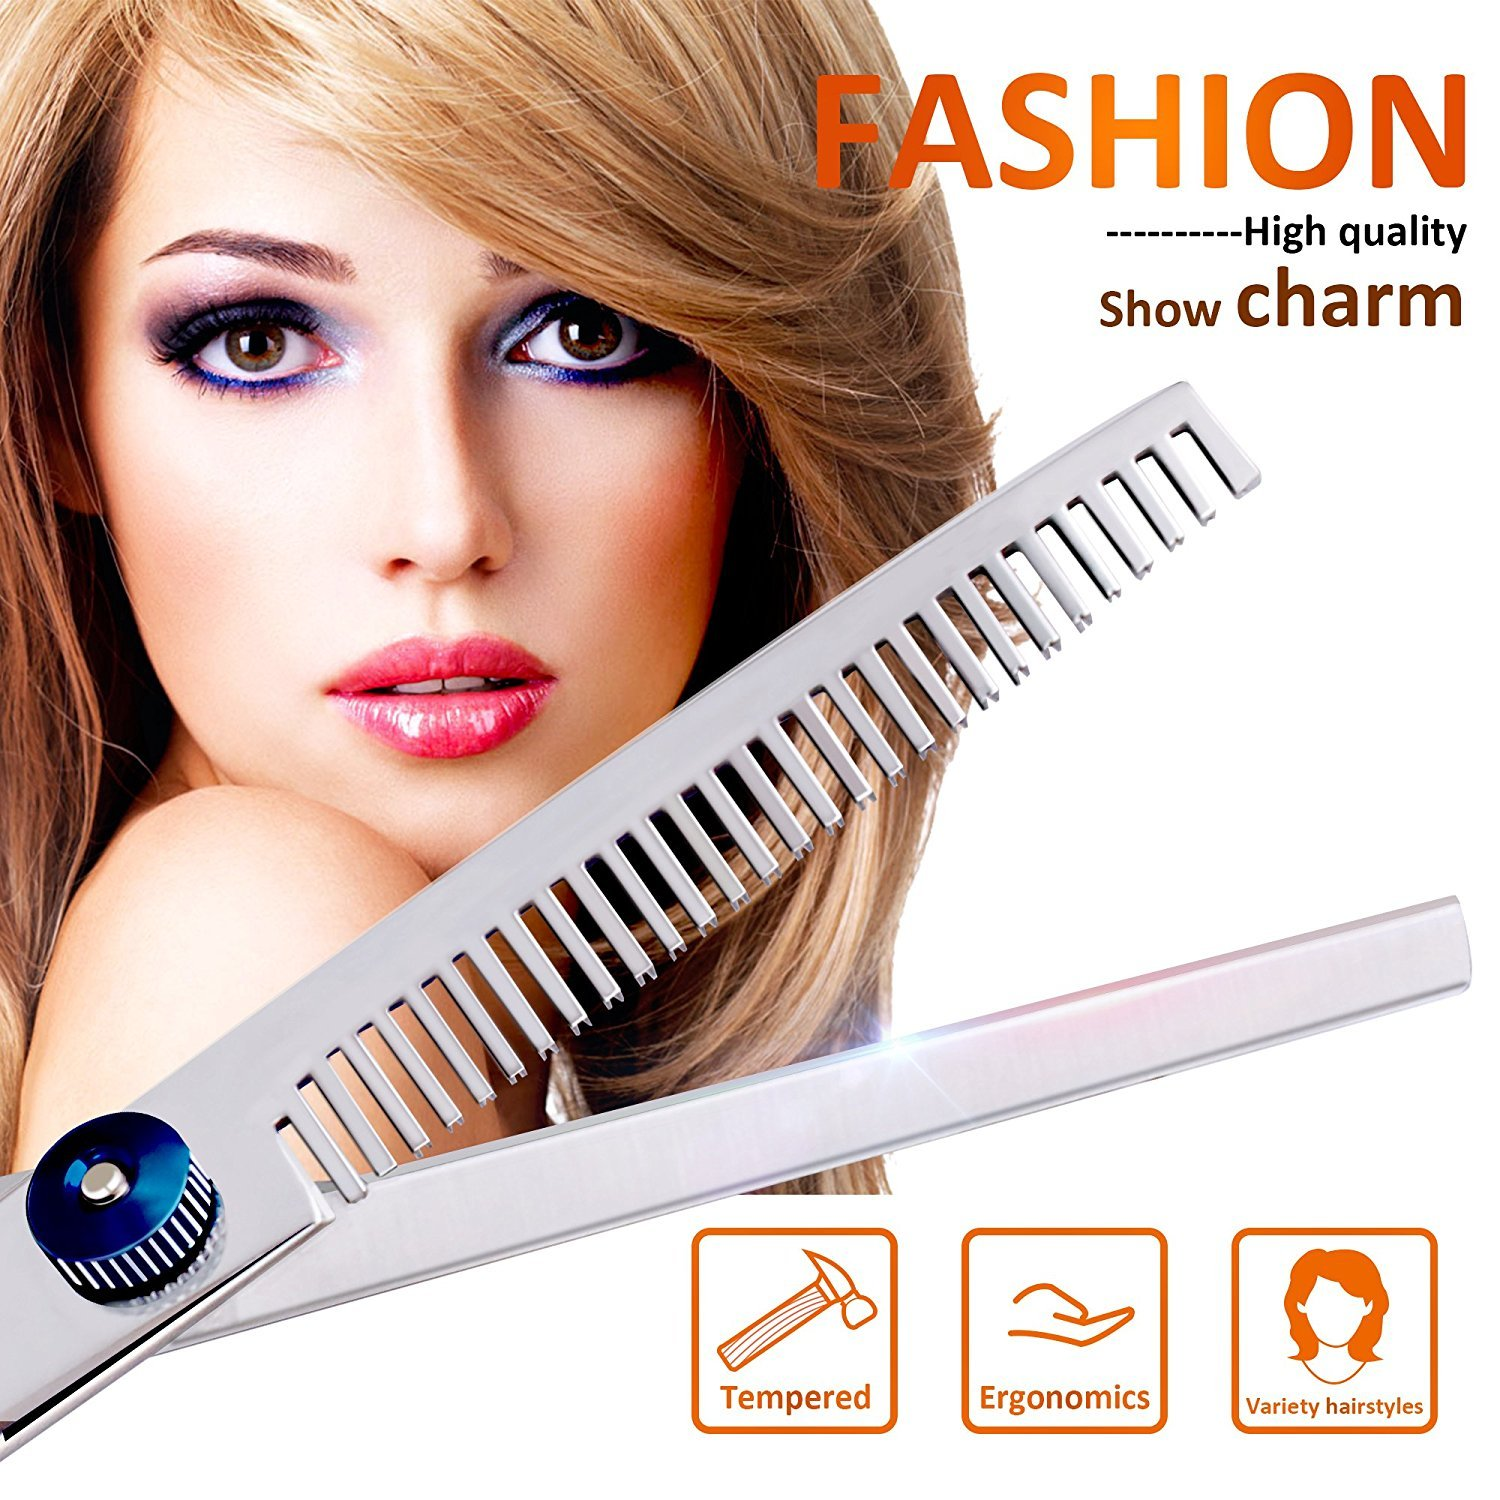 Hair Cutting Scissors Shears and Barber Thinning Salon Razor Edge Tools Set Mustache Scissors with Fine Adjustment Screw Japanese Stainless Steel Kit--by Drift(Sliver)